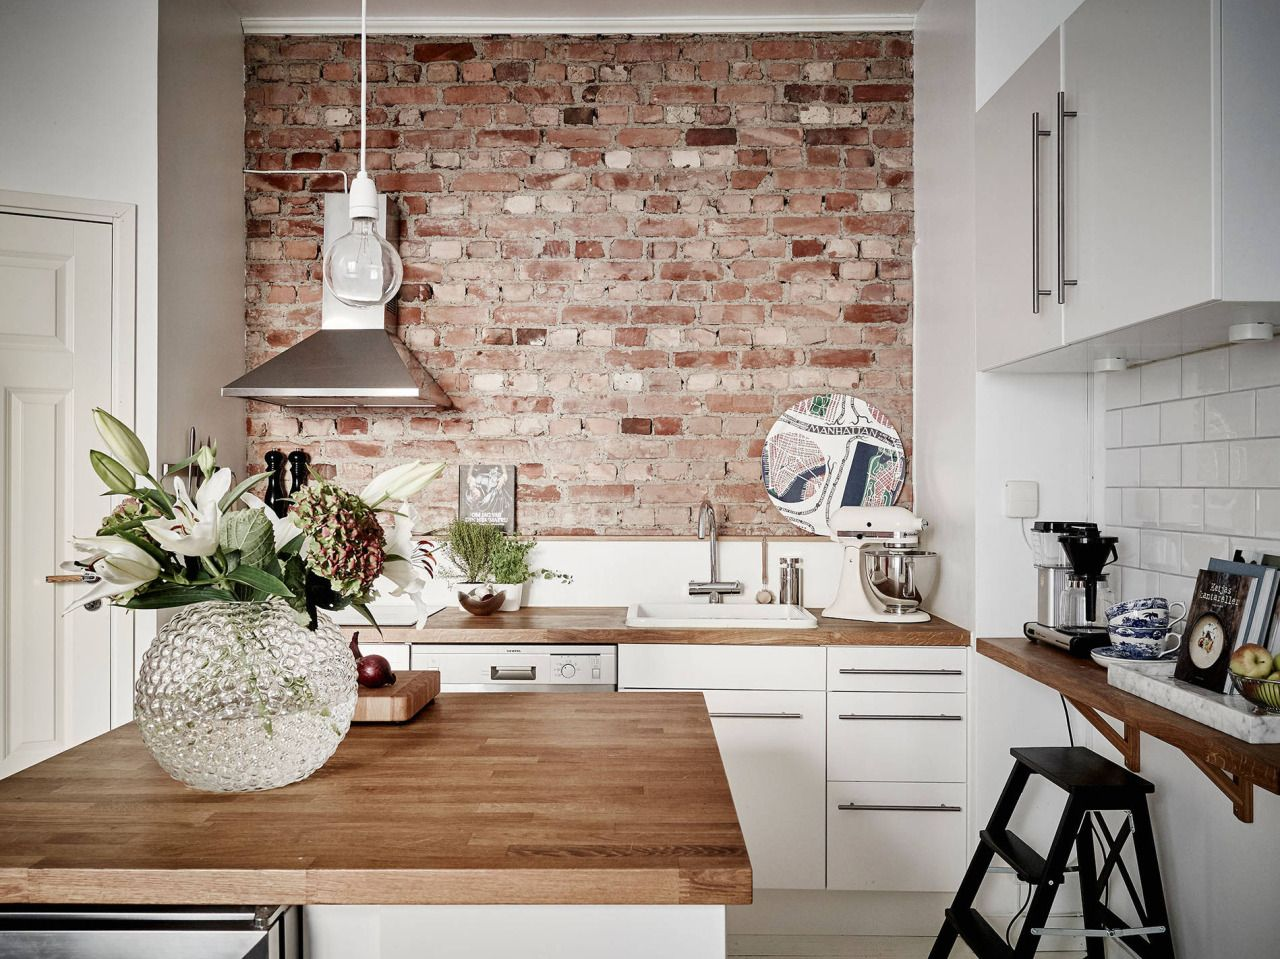 Create An Elegant Statement With A White Brick Wall Exposed Brick Bricks And White Brick Walls